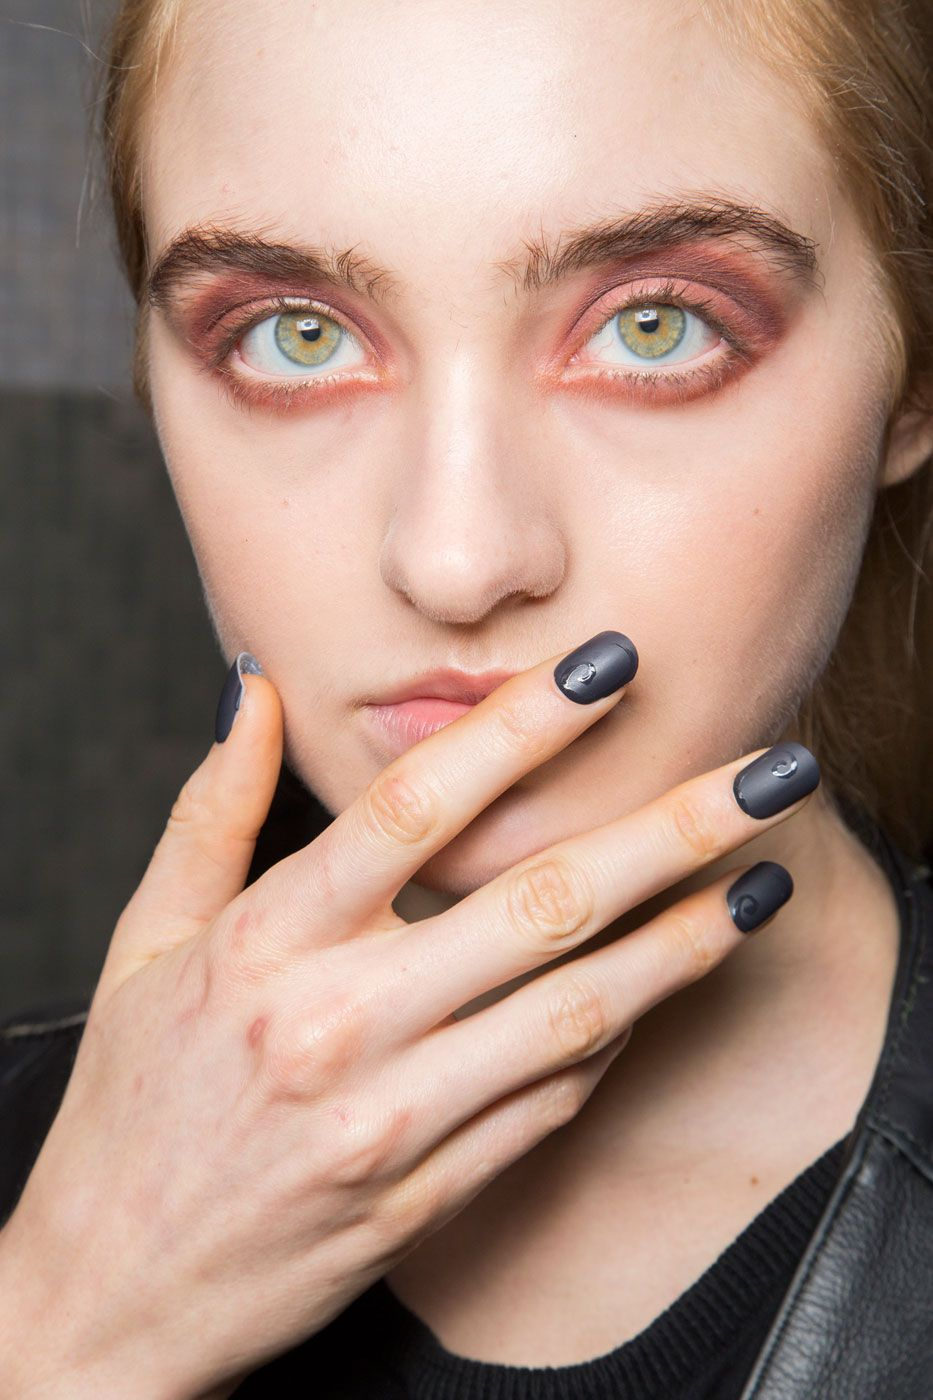 Antonio Marras Fall 2015 | Antonio marras, Fall 2015 and Beauty photos